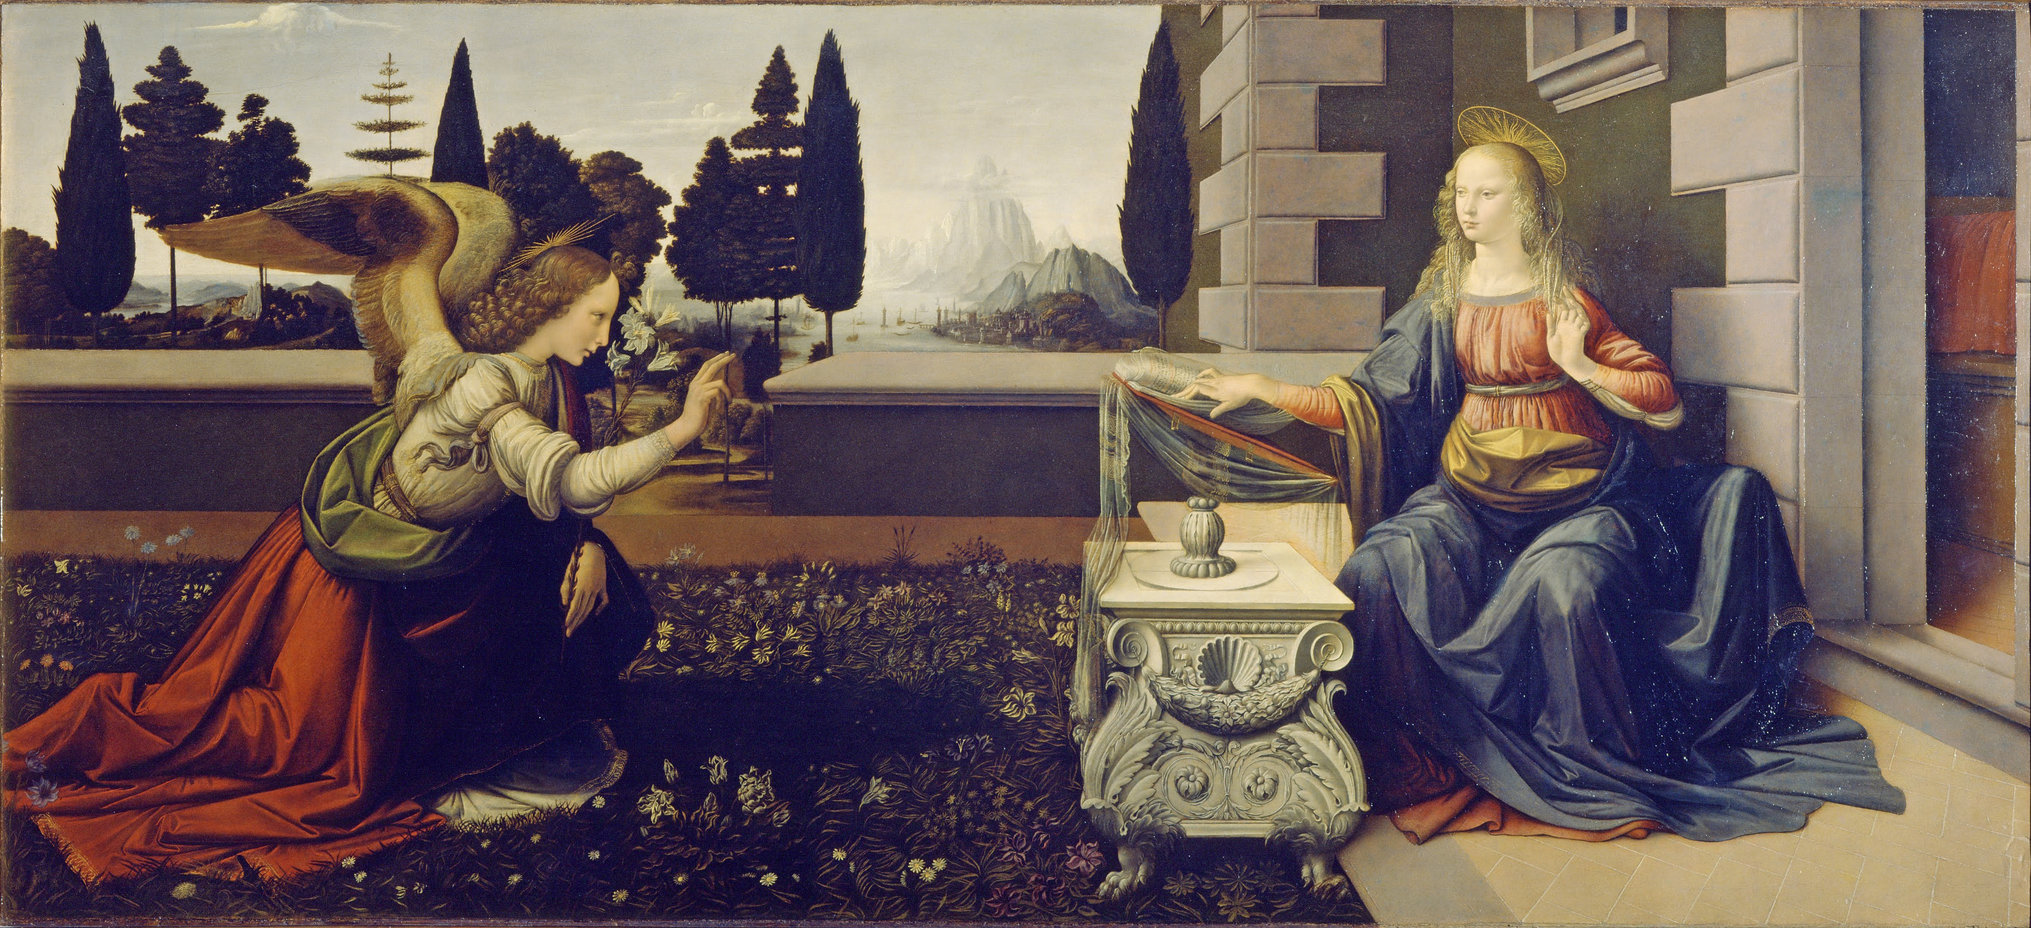 a comparison of the qualities of leonardo da vinci and michelangelo bounarroti As a young artist working in florence michelangelo was taught the art of fresco  painting  full name: michelangelo di lodovico buonarroti simoni short name: .